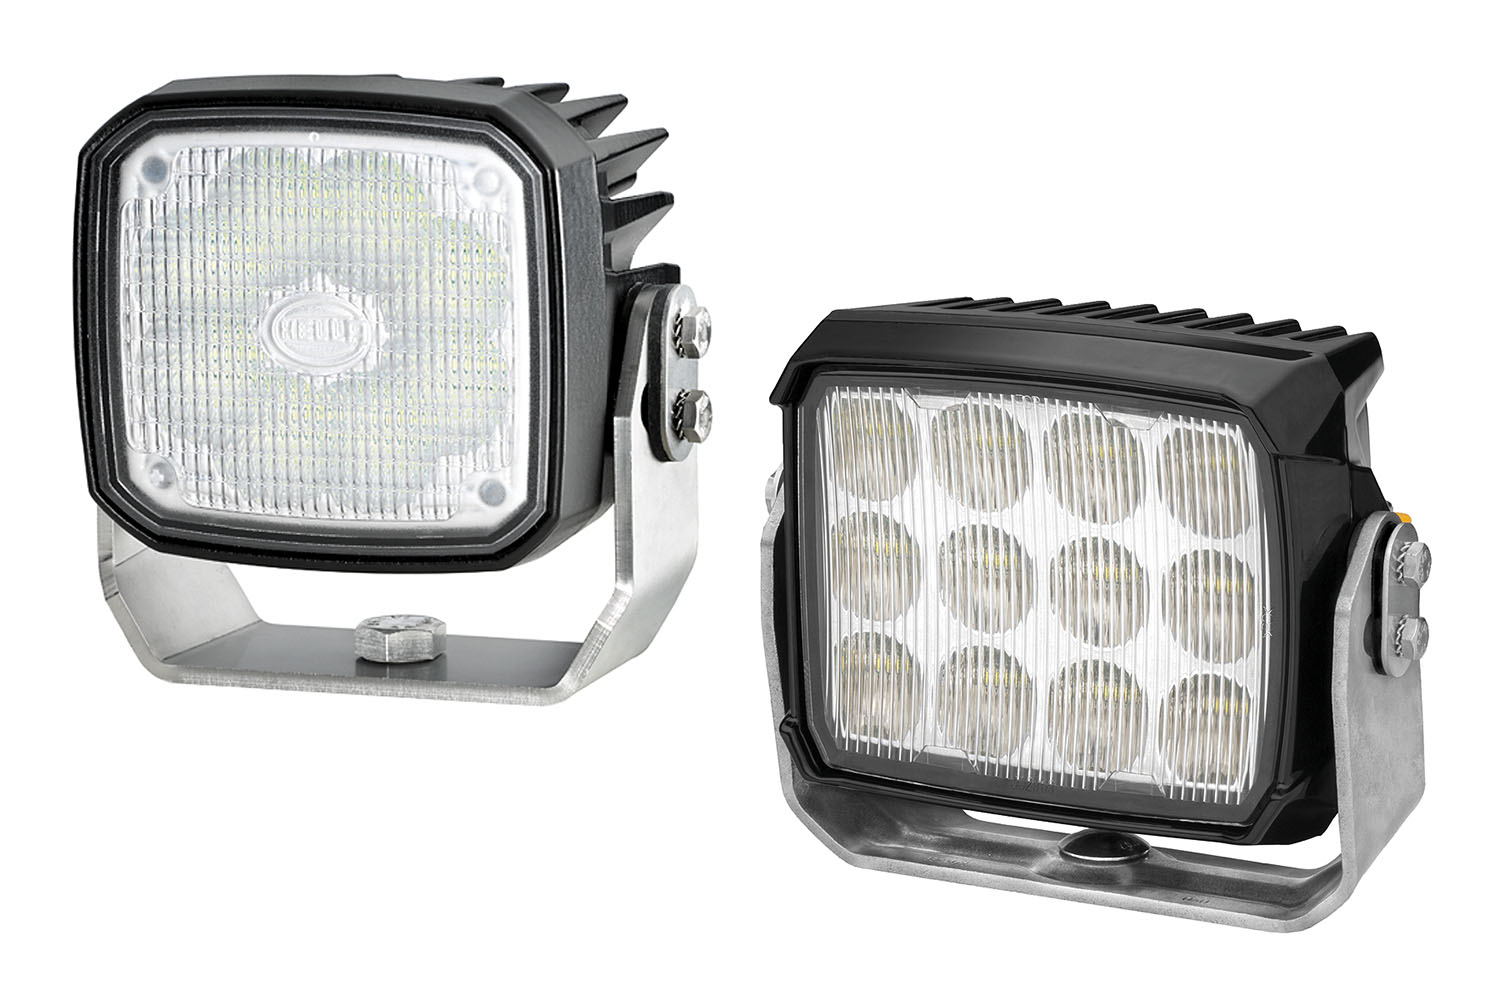 Hella RokLUME LED floodlights are available in 7,500- or 4,300-lumen models.